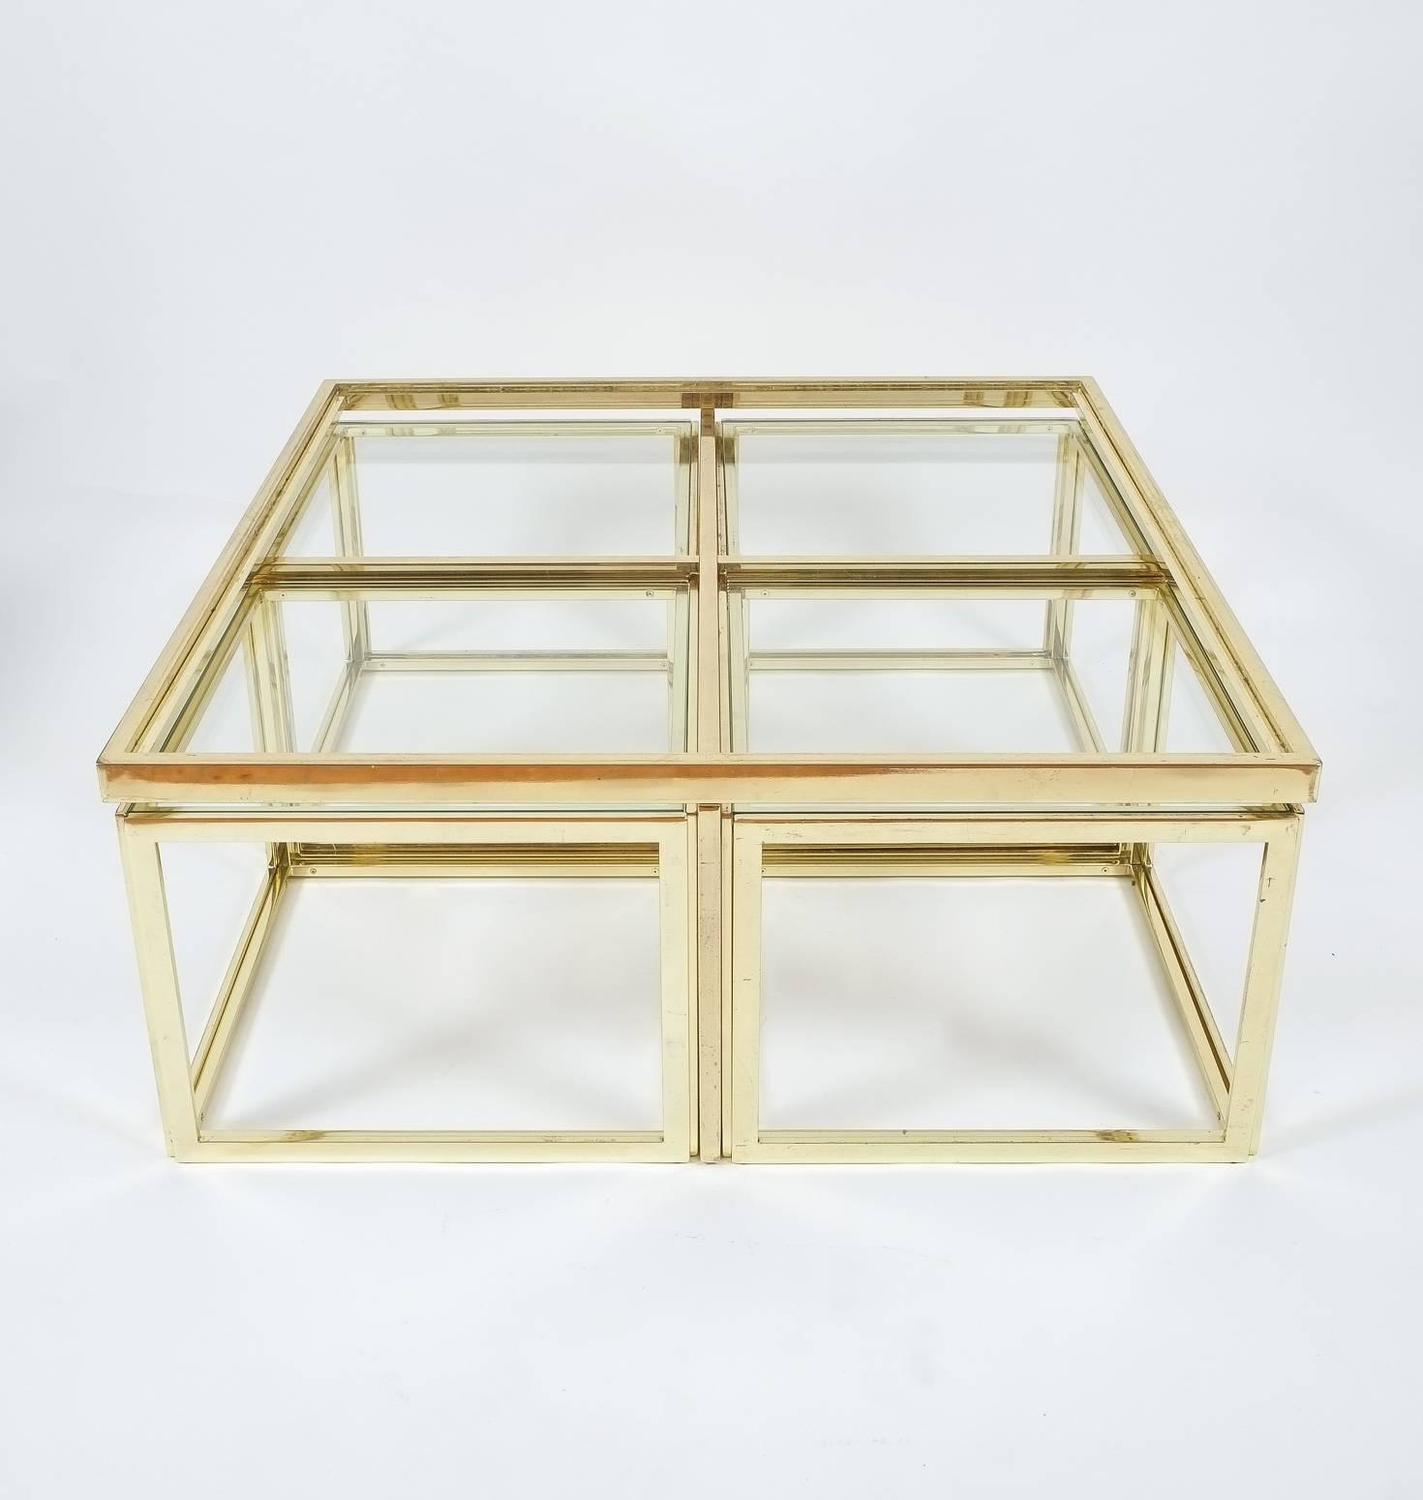 Square Segment Brass And Glass Coffee Table By Maison